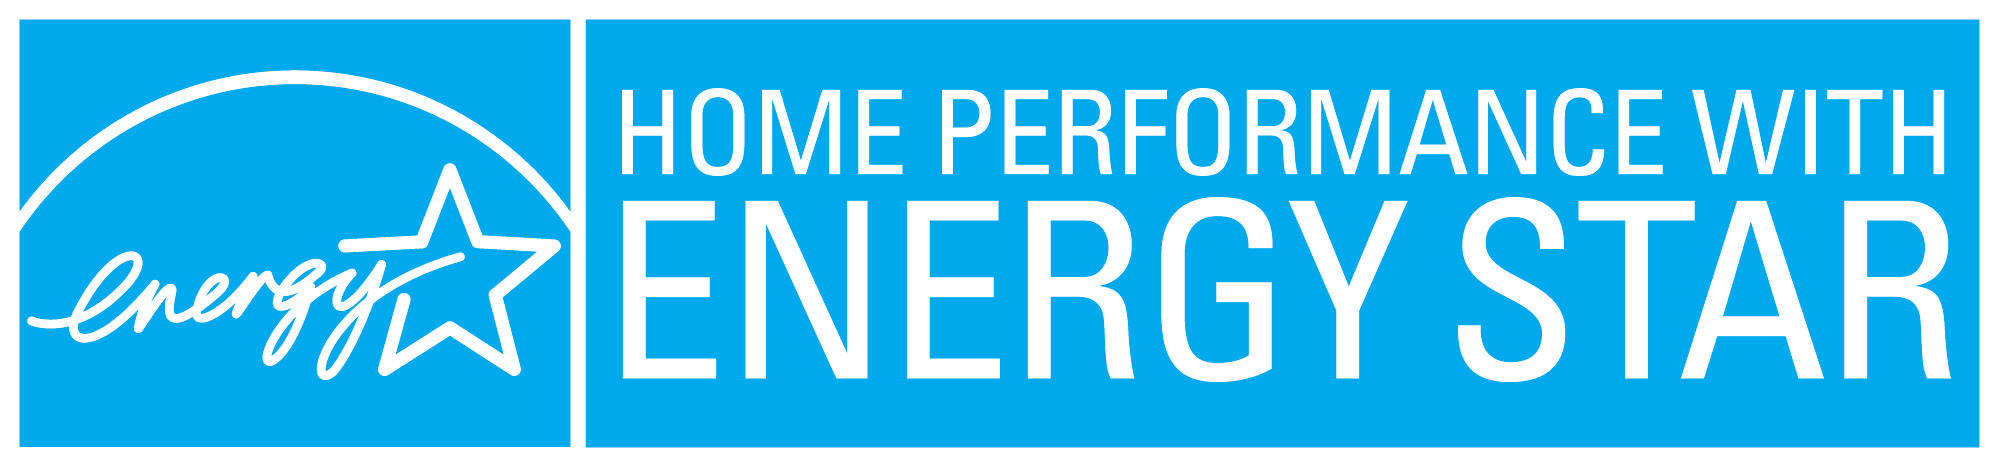 the energy star home essay This white paper examines a recent study that uses statistical analysis to quantify the impact of energy star certification on home prices.